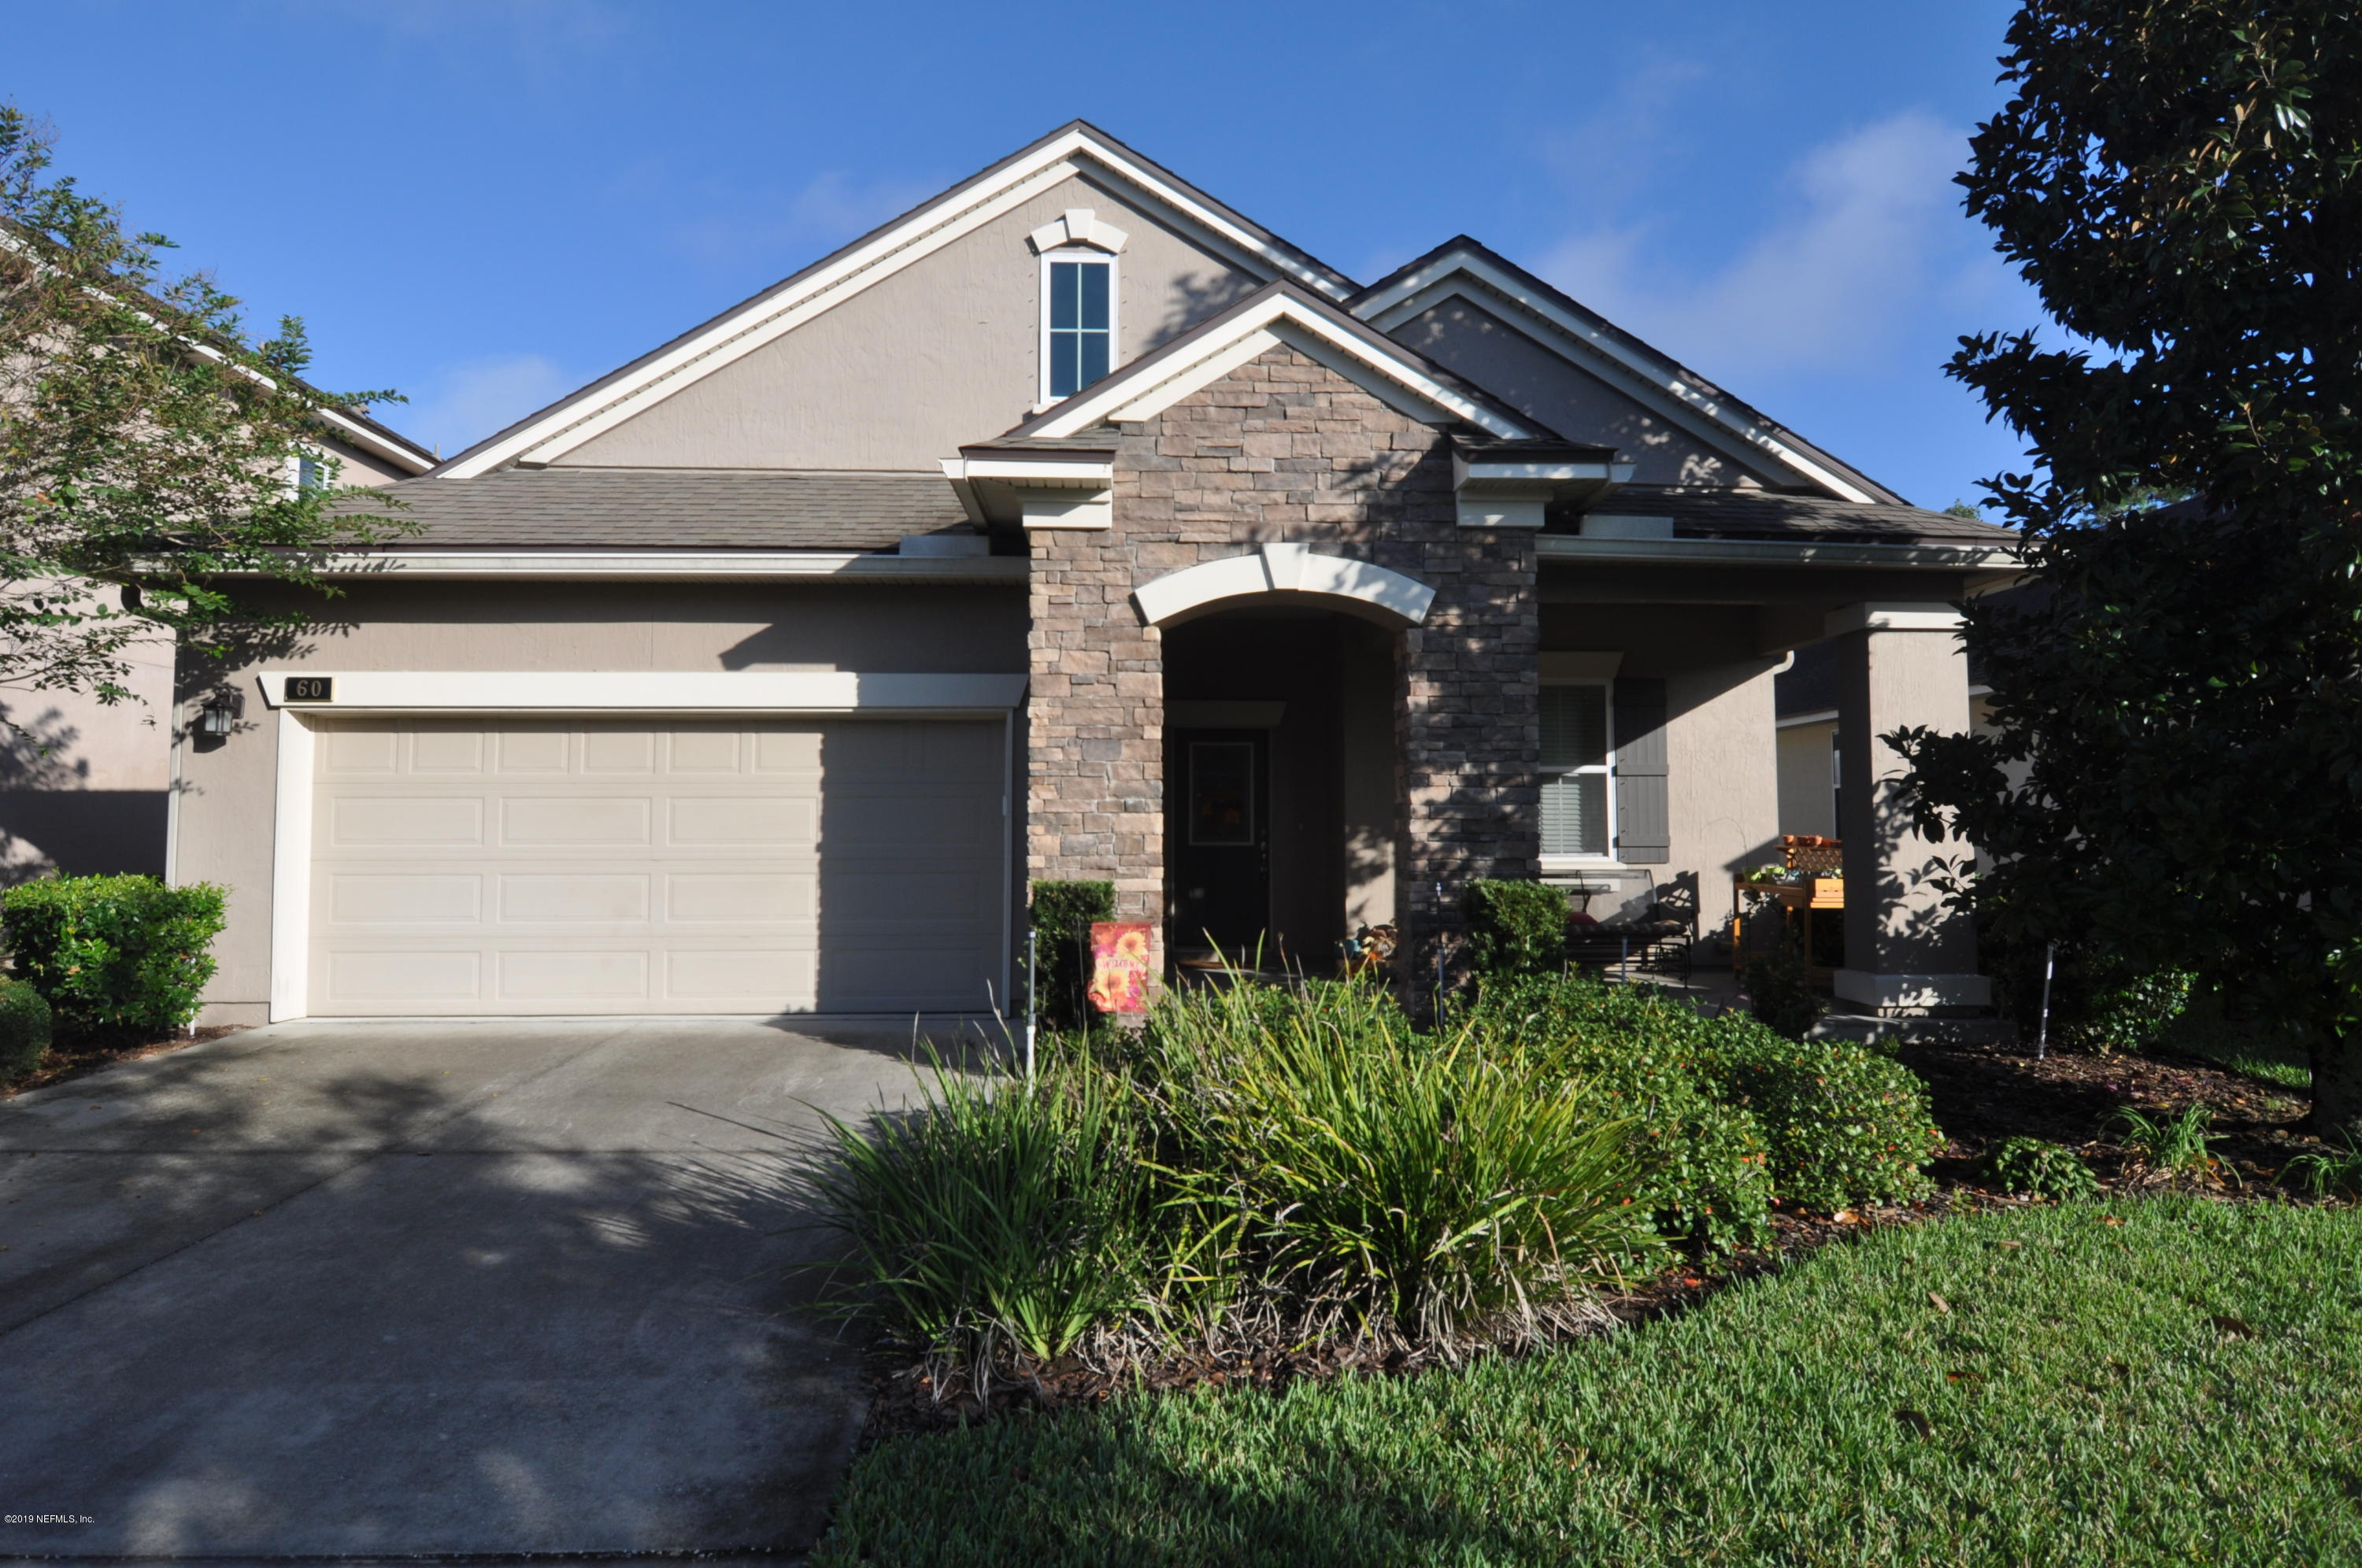 60 WINDSTONE, PONTE VEDRA, FLORIDA 32081, 4 Bedrooms Bedrooms, ,2 BathroomsBathrooms,Rental,For Rent,WINDSTONE,1024154